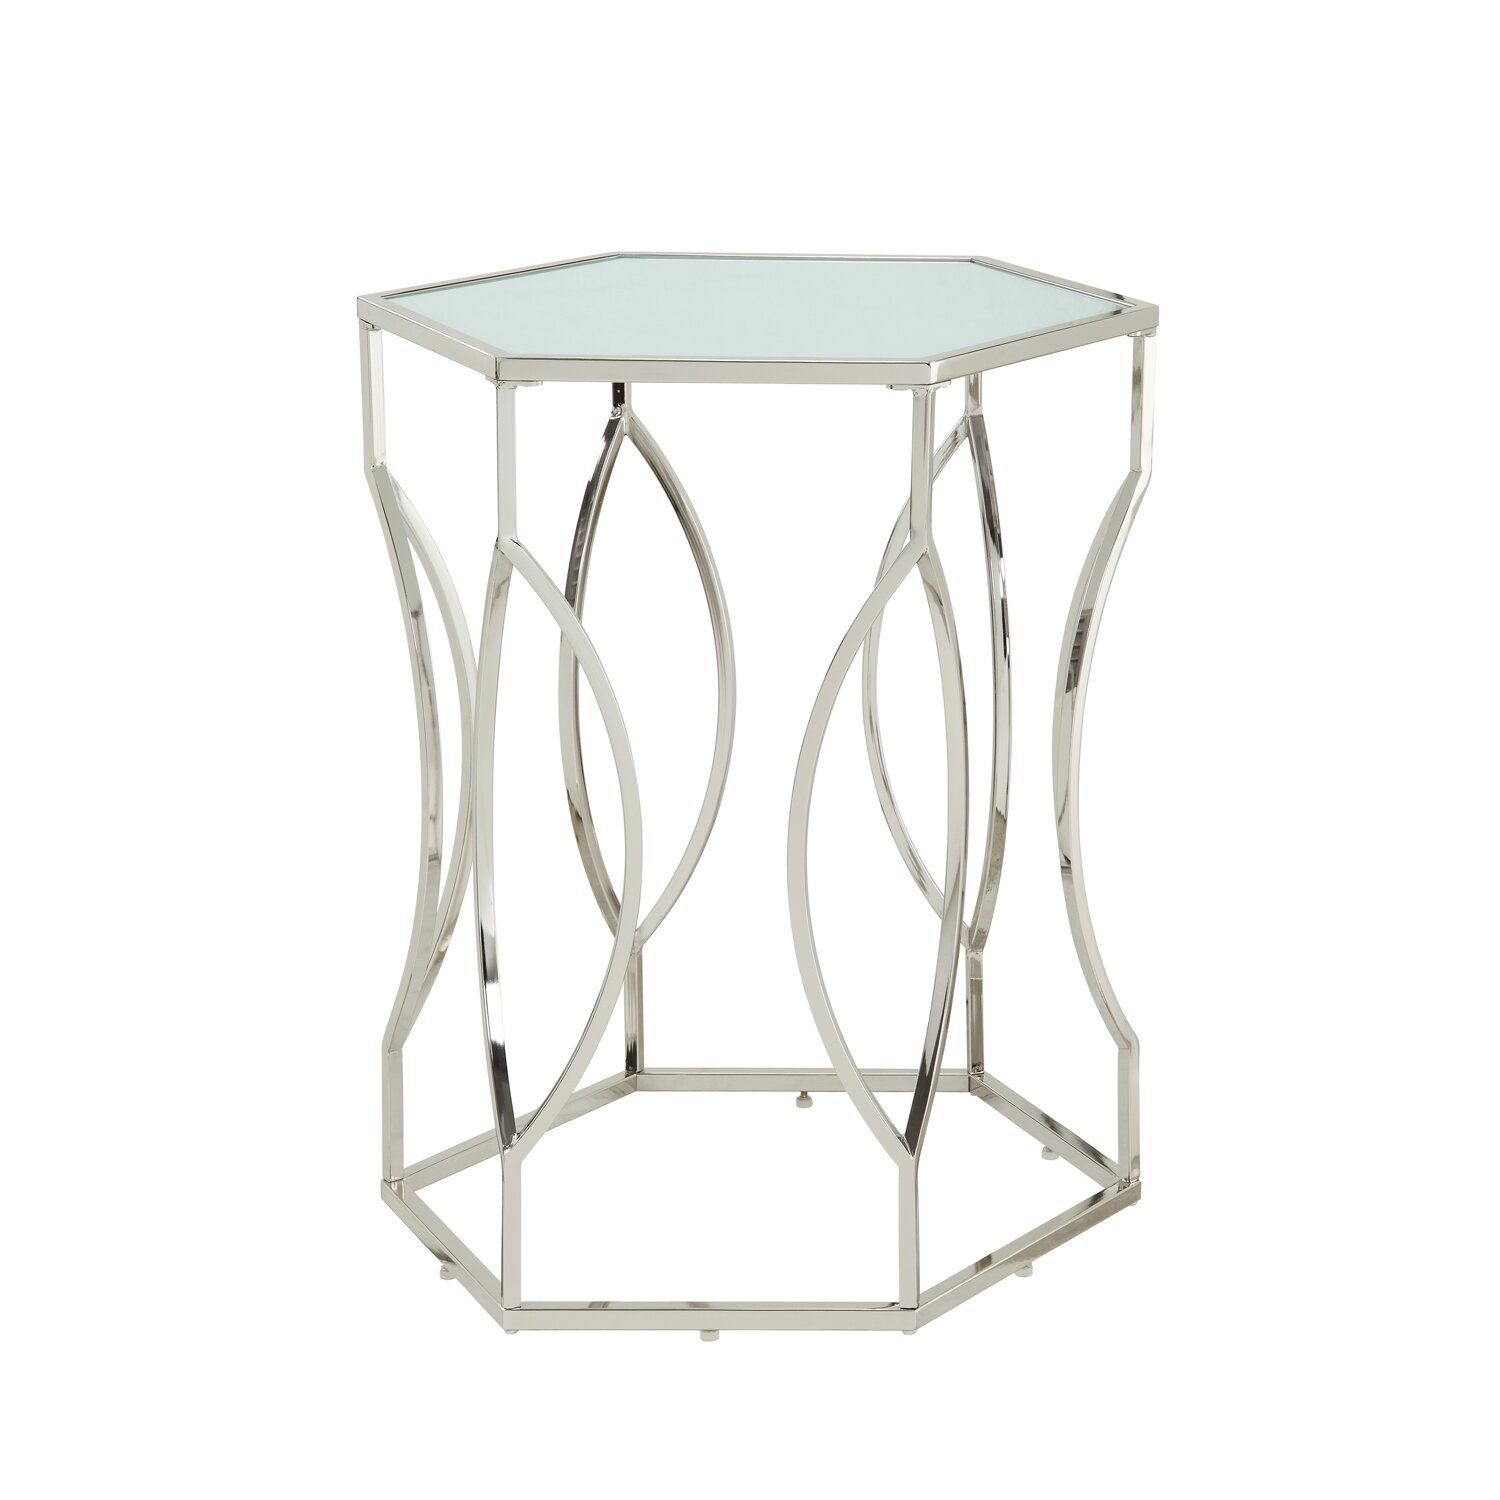 Kingsbury Home Alberto Contemporary Hexagon Wavy Glass Top Accent Table,  Chrome Finish